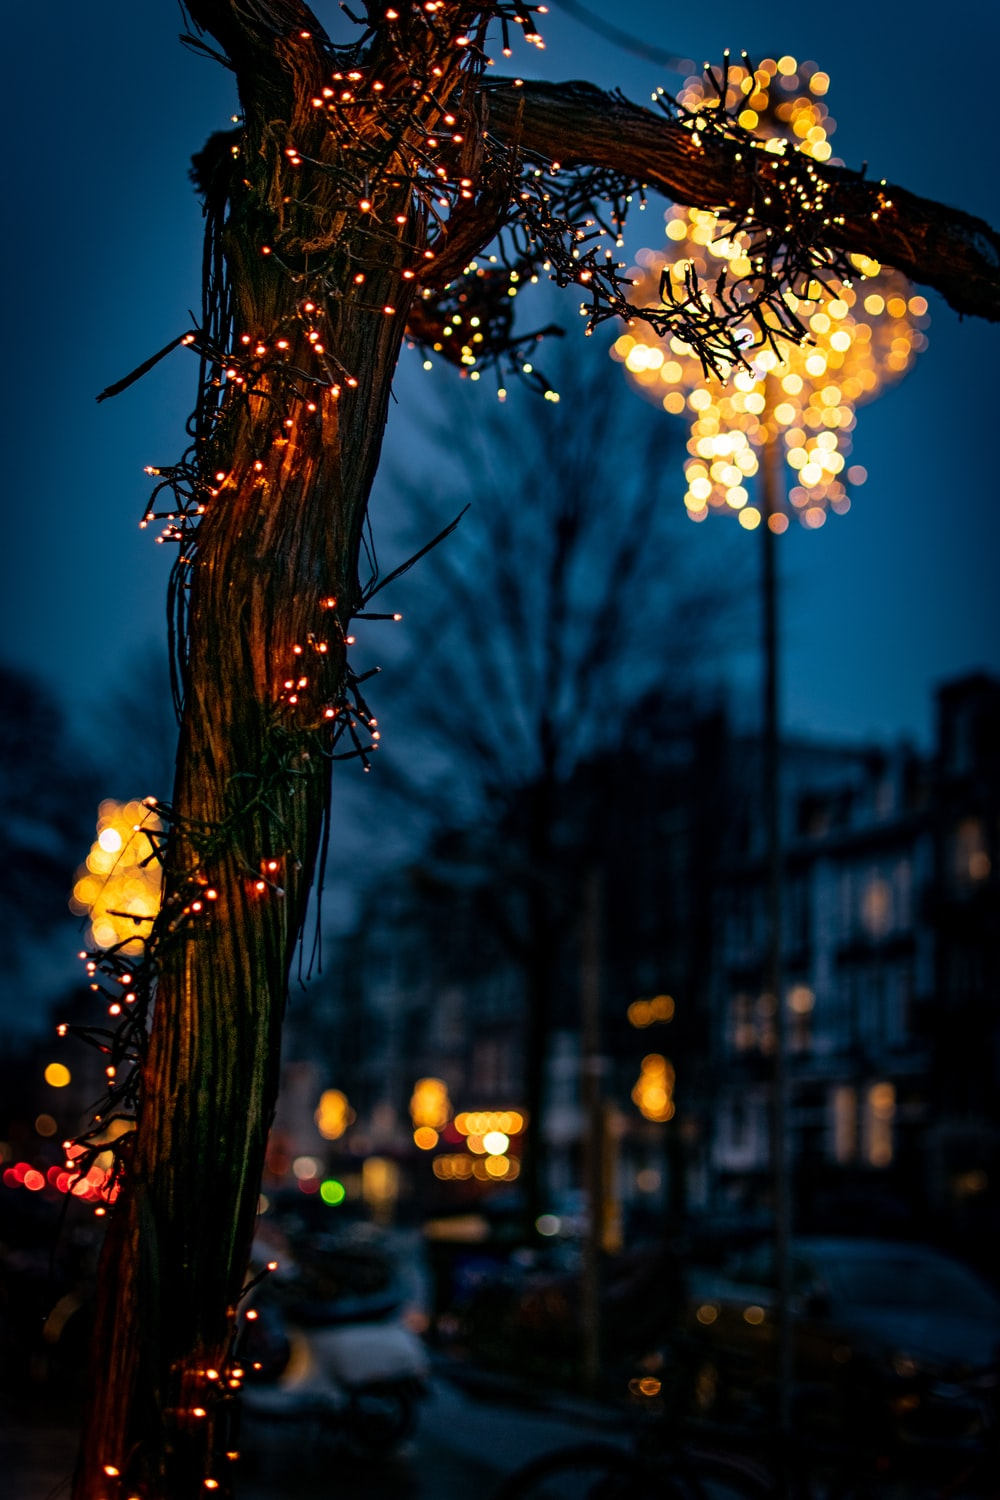 turned-on string lights in tree